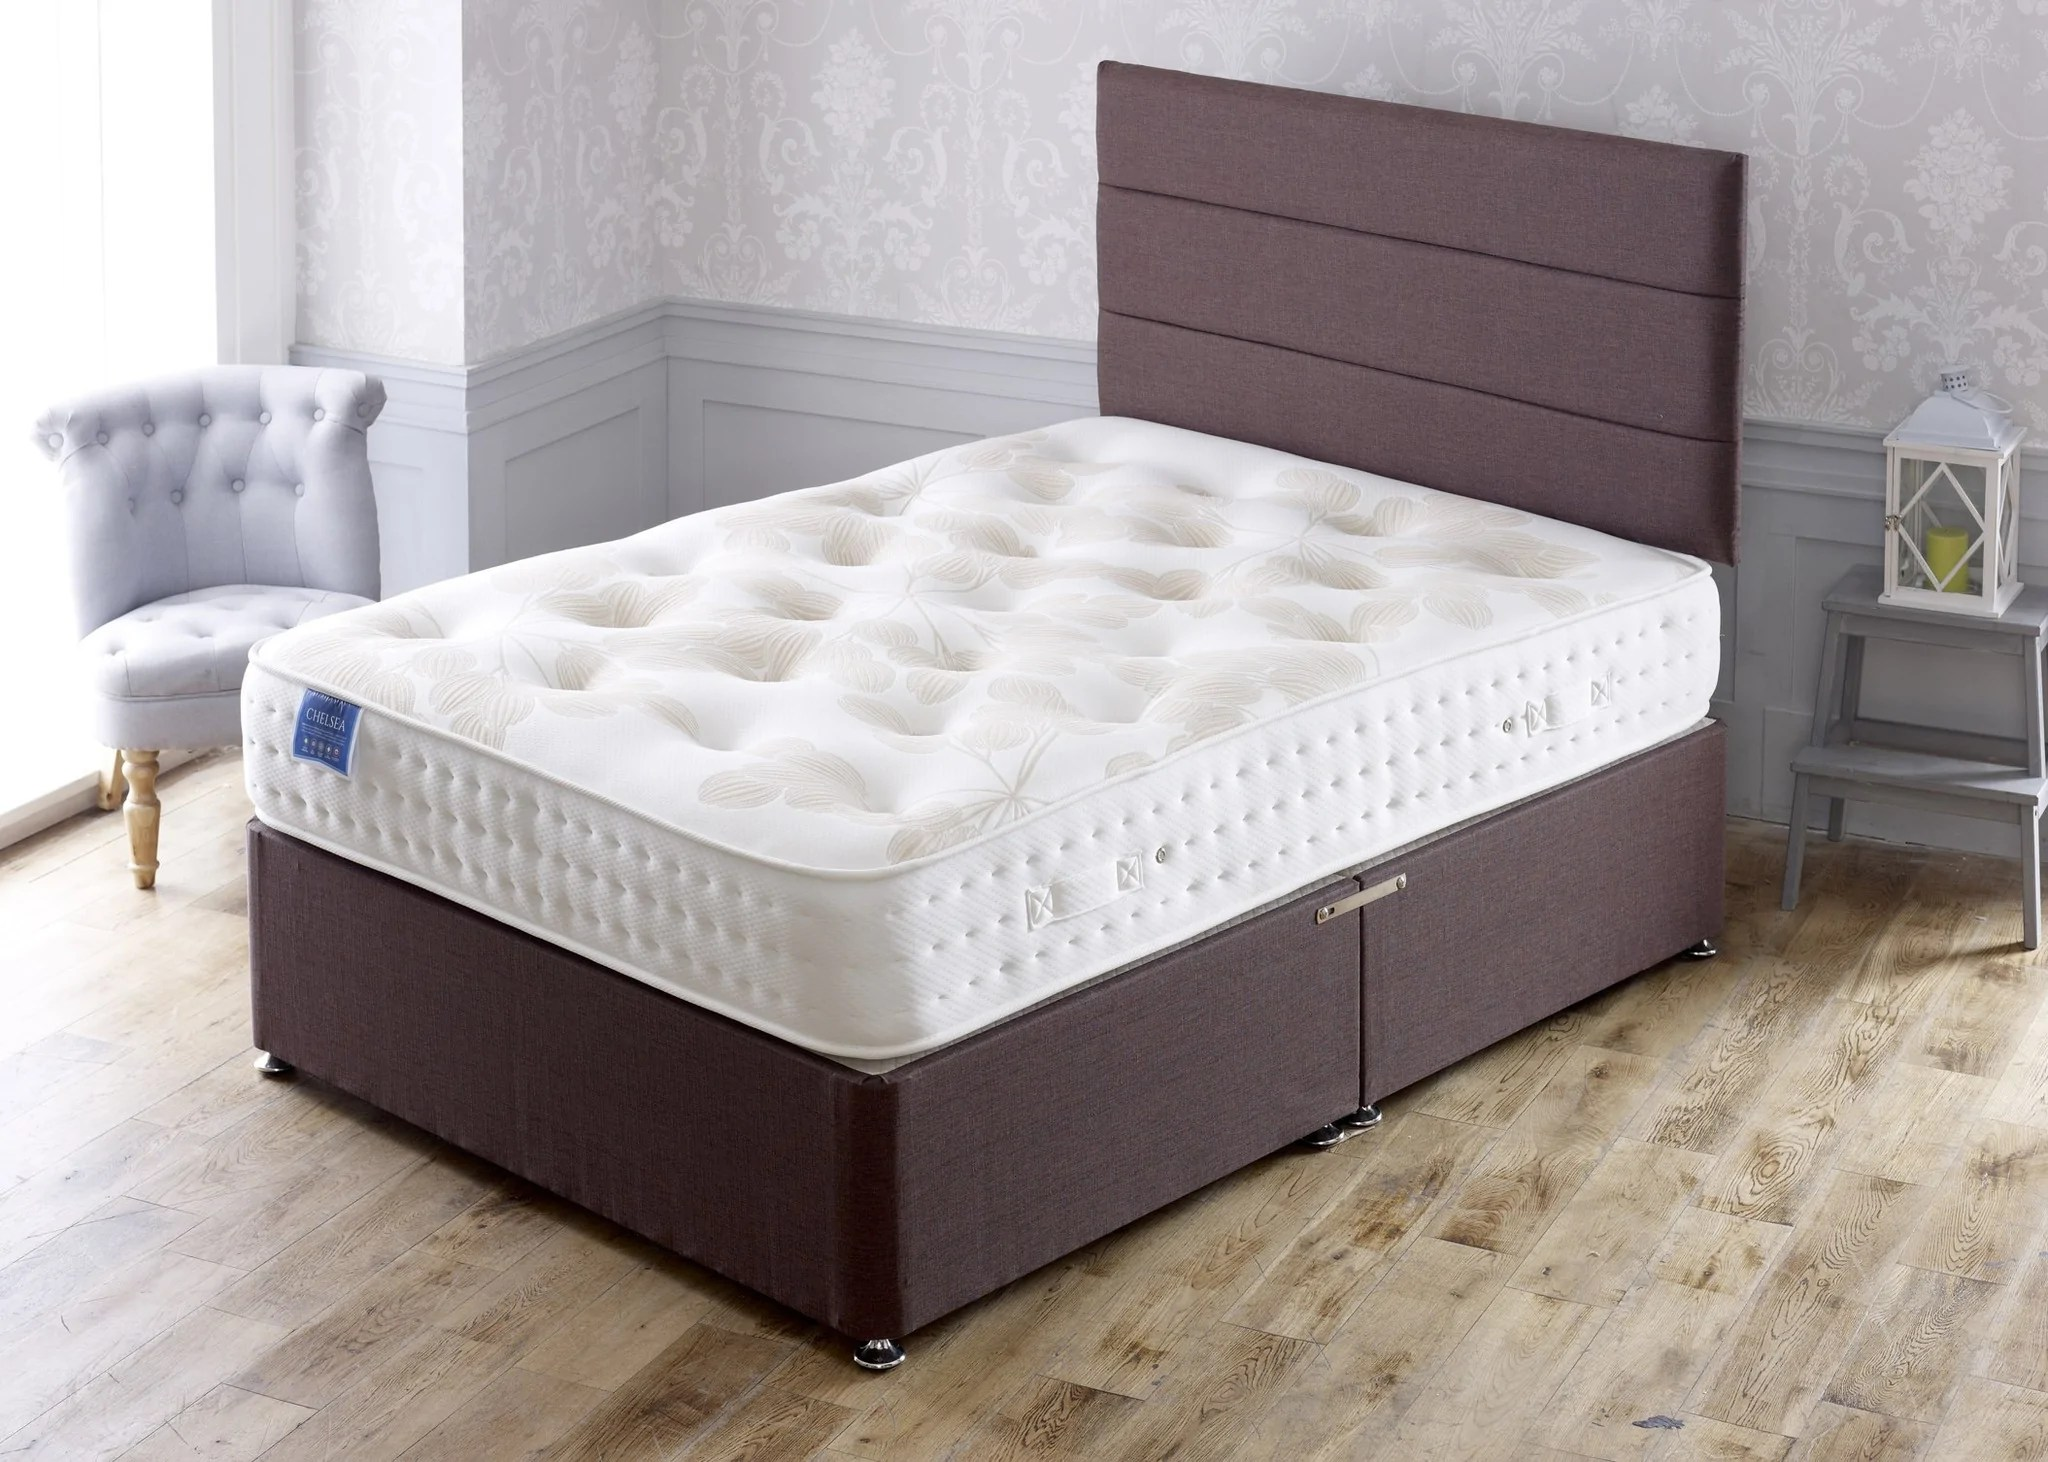 Divan Beds Cheap Chelsea Divan Bed Set With 1500 Pocket Sprung Memory Foam Medium Comfort Mattress